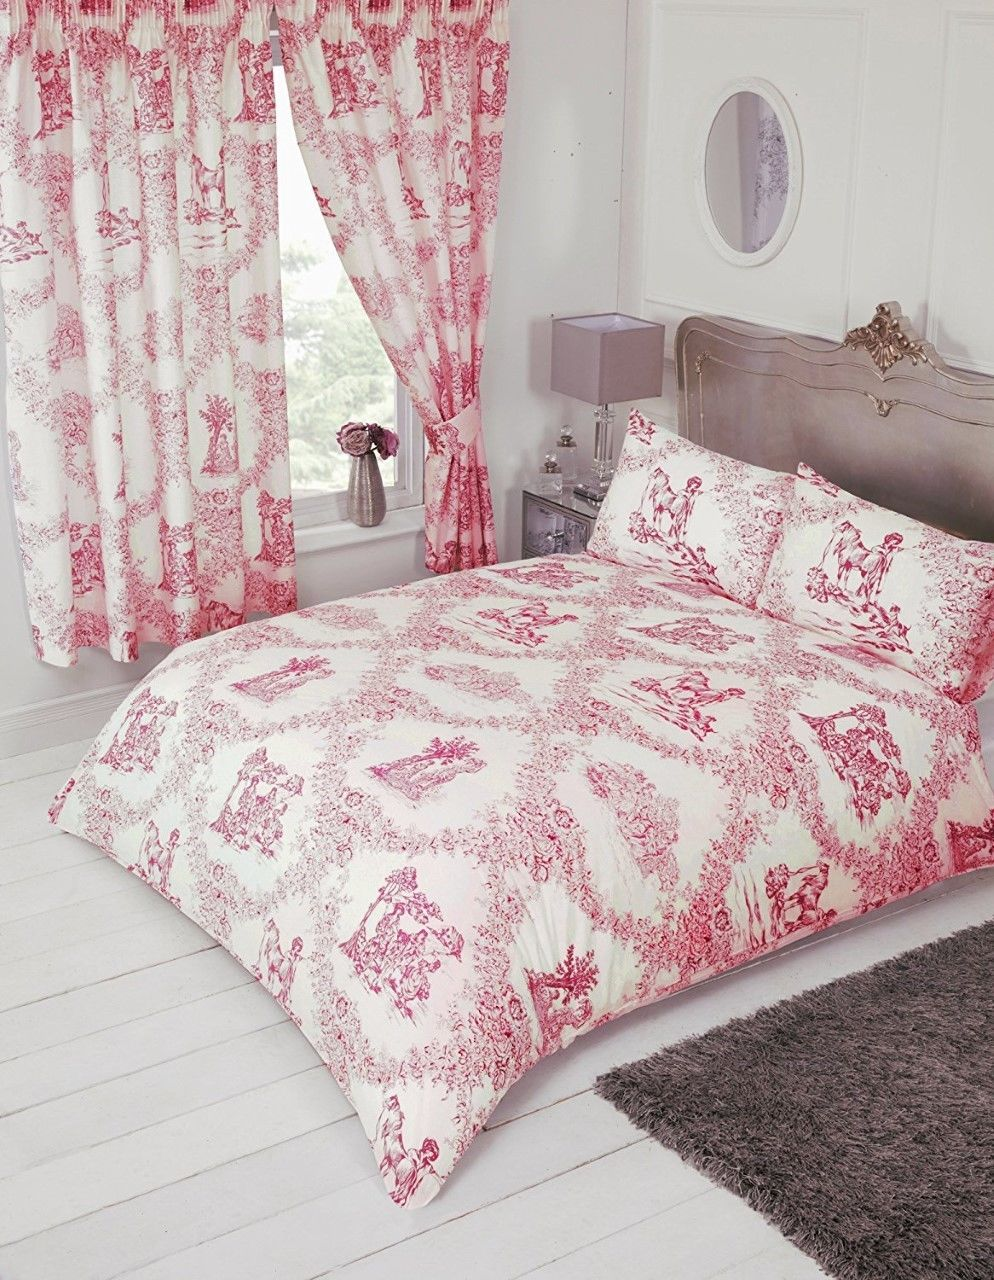 traditional toile de jouy duvet cover set from century textiles. Black Bedroom Furniture Sets. Home Design Ideas